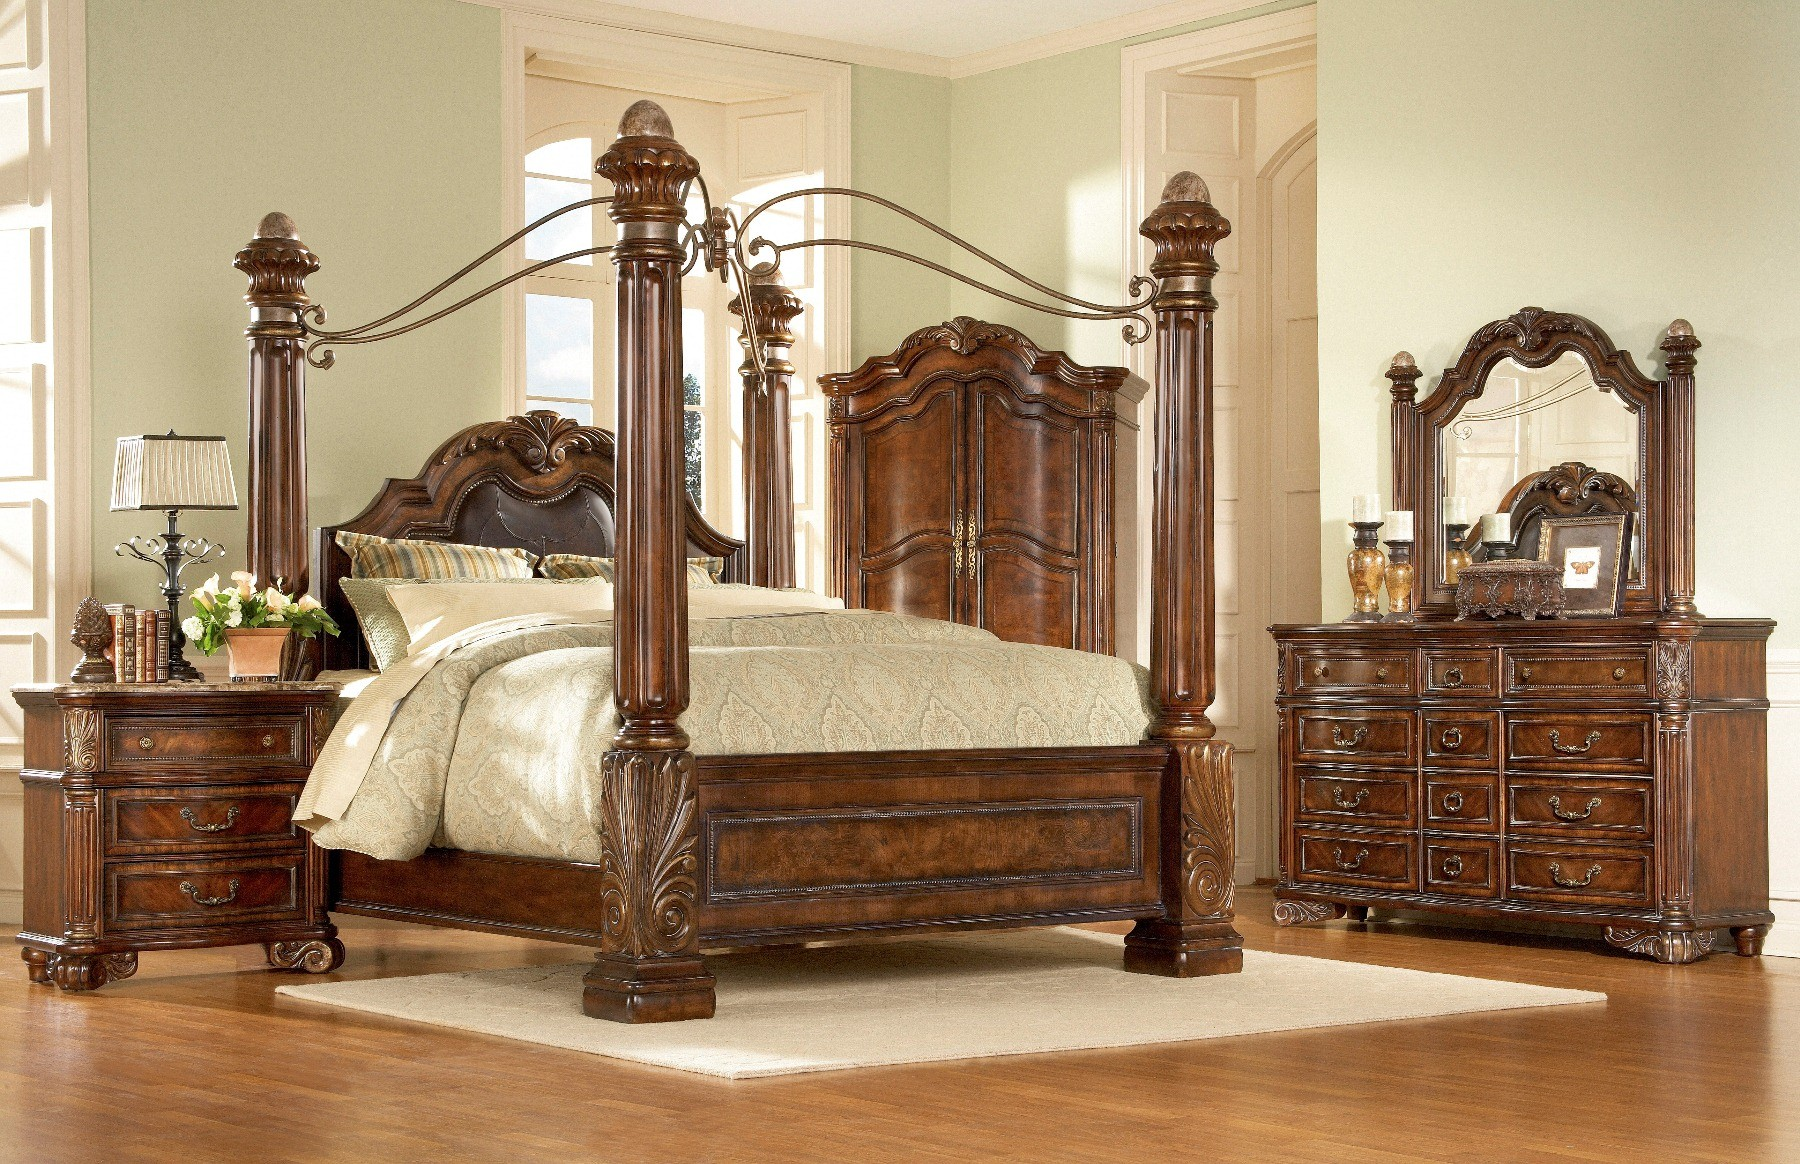 Regal king poster bed from art furniture 142157 2606 - King size bedroom sets for sale by owner ...